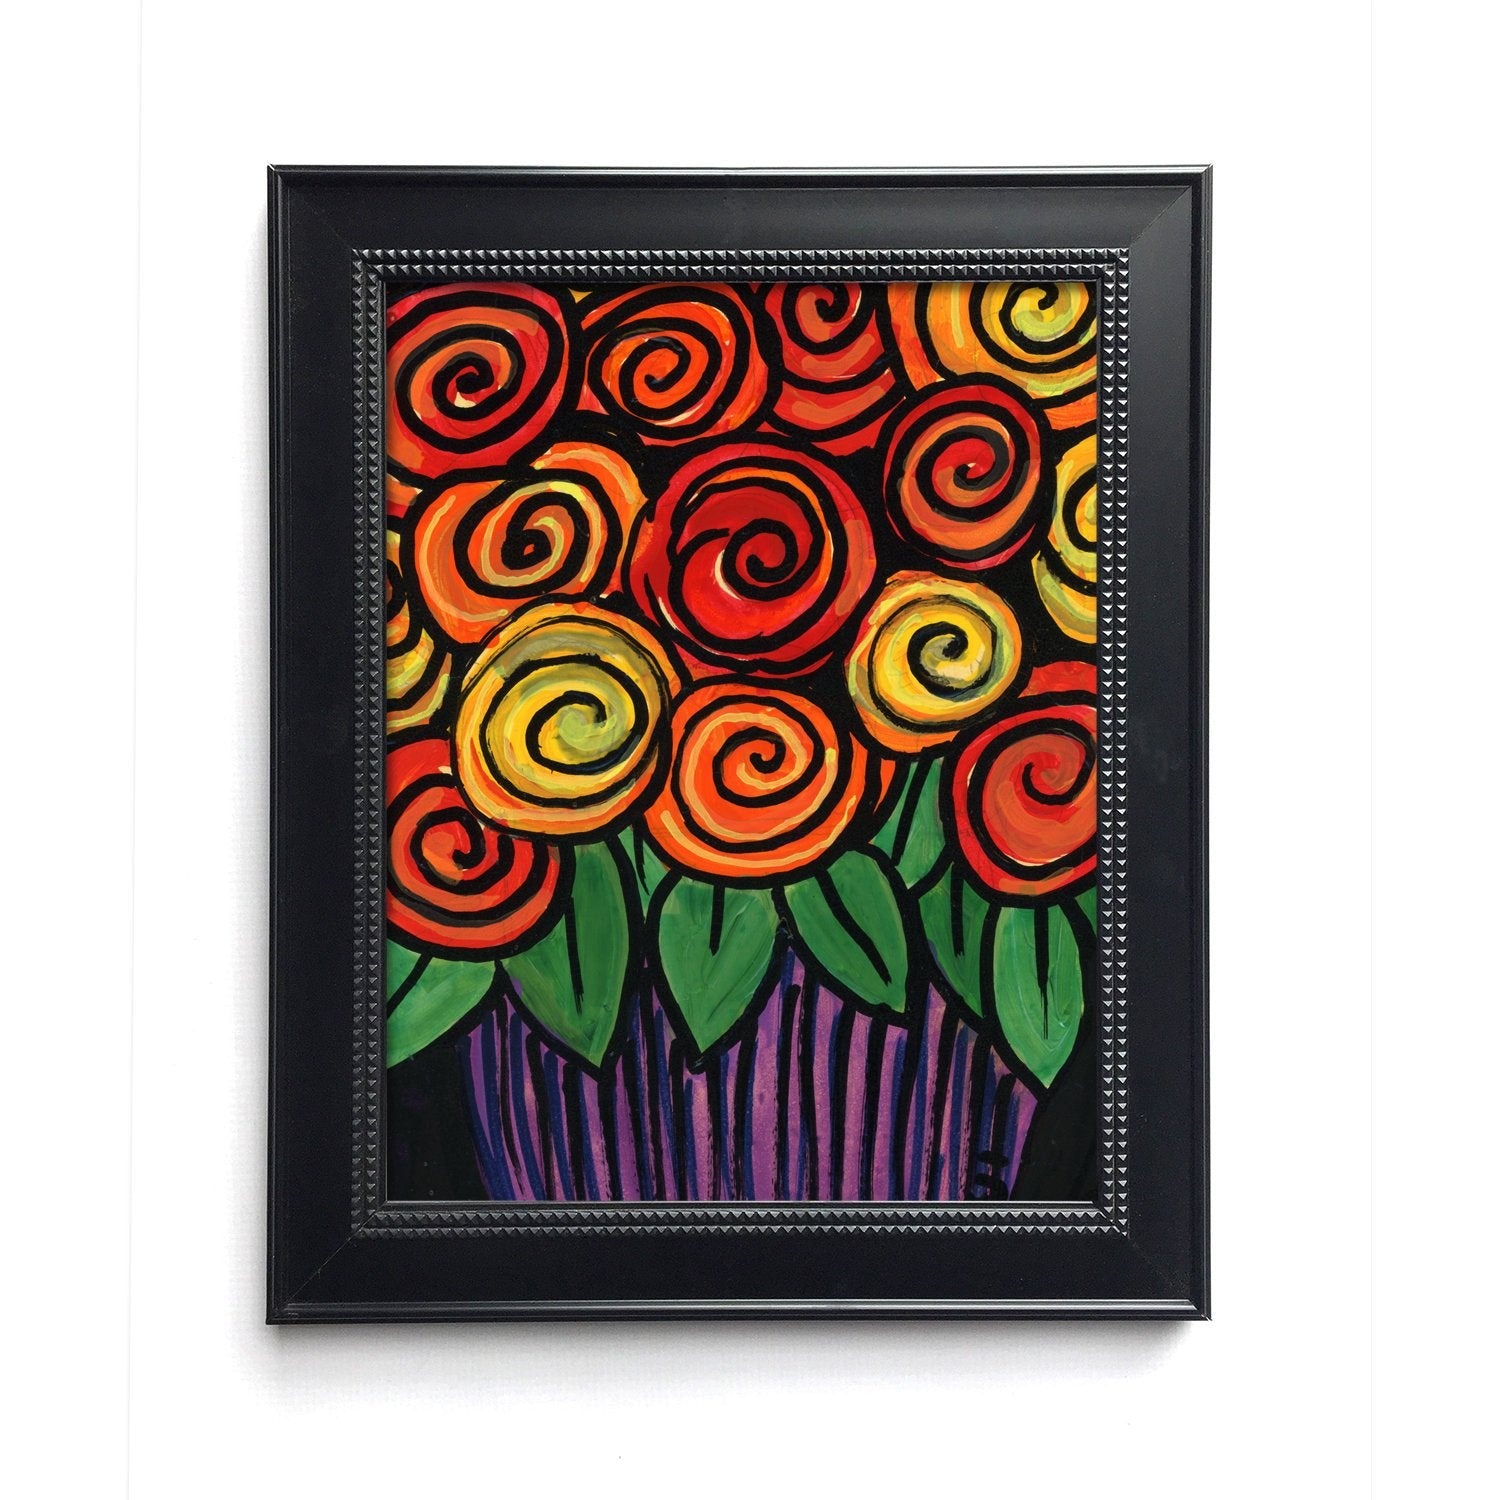 Whimsical Rose Print - Bright Colors